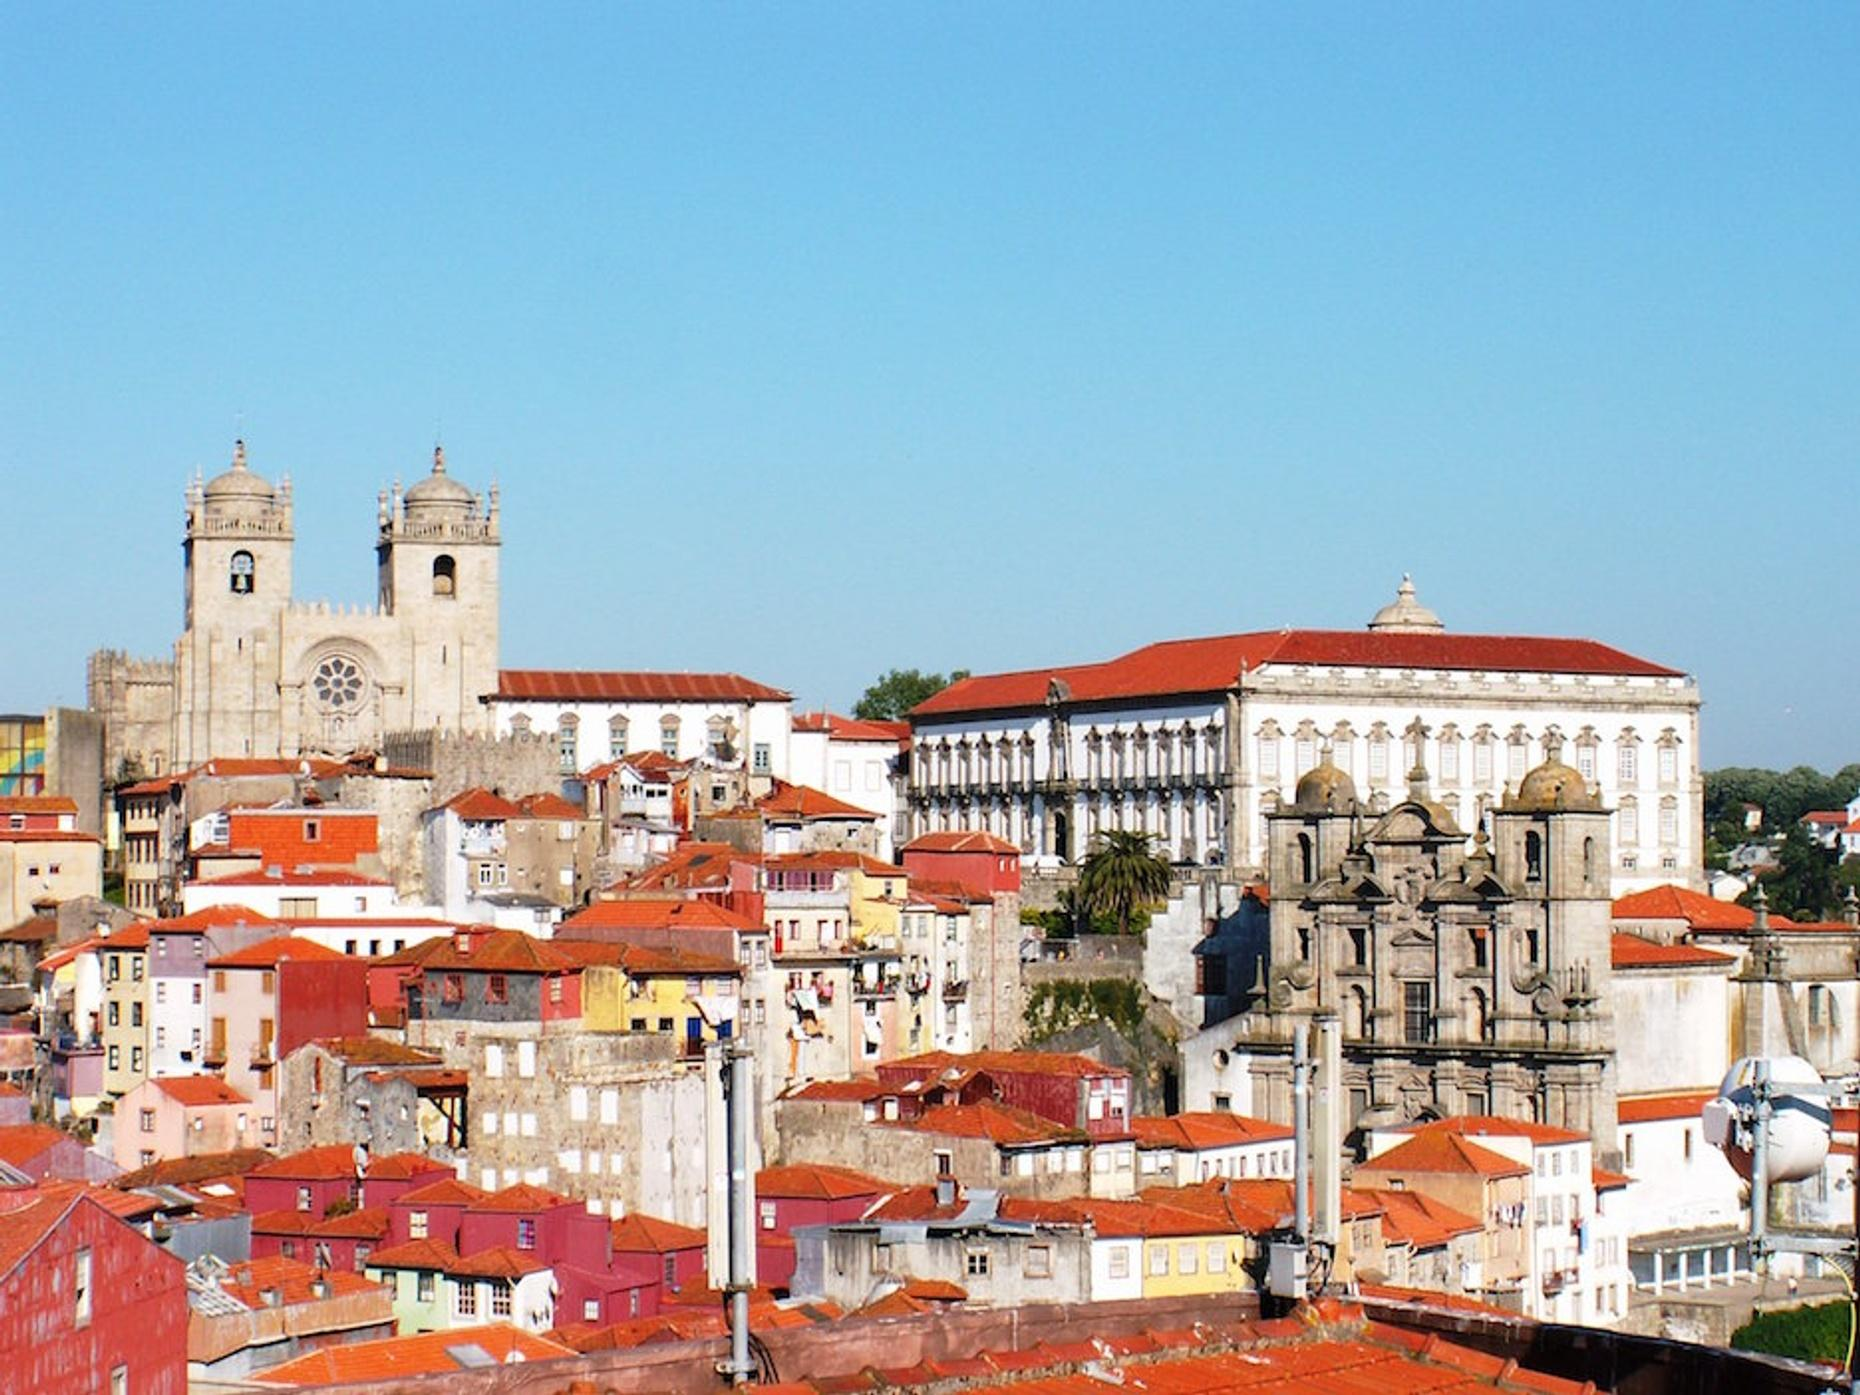 Guided Afternoon Walking Tour of Porto